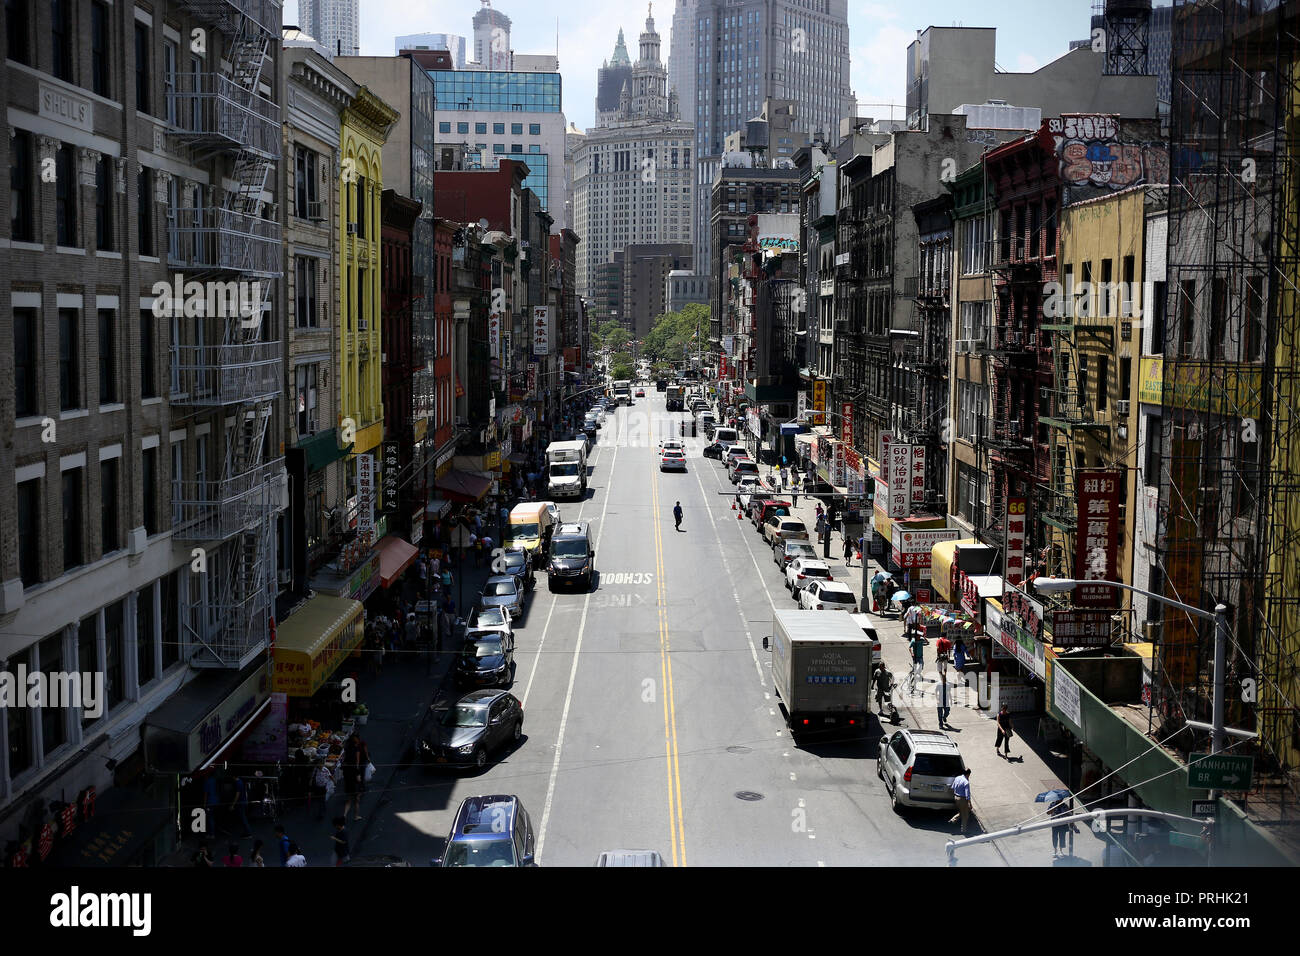 New York, Usa - June 22, 2018: Chinatown view from the Manhattan Bridge in Chinatown, New York City - Stock Image